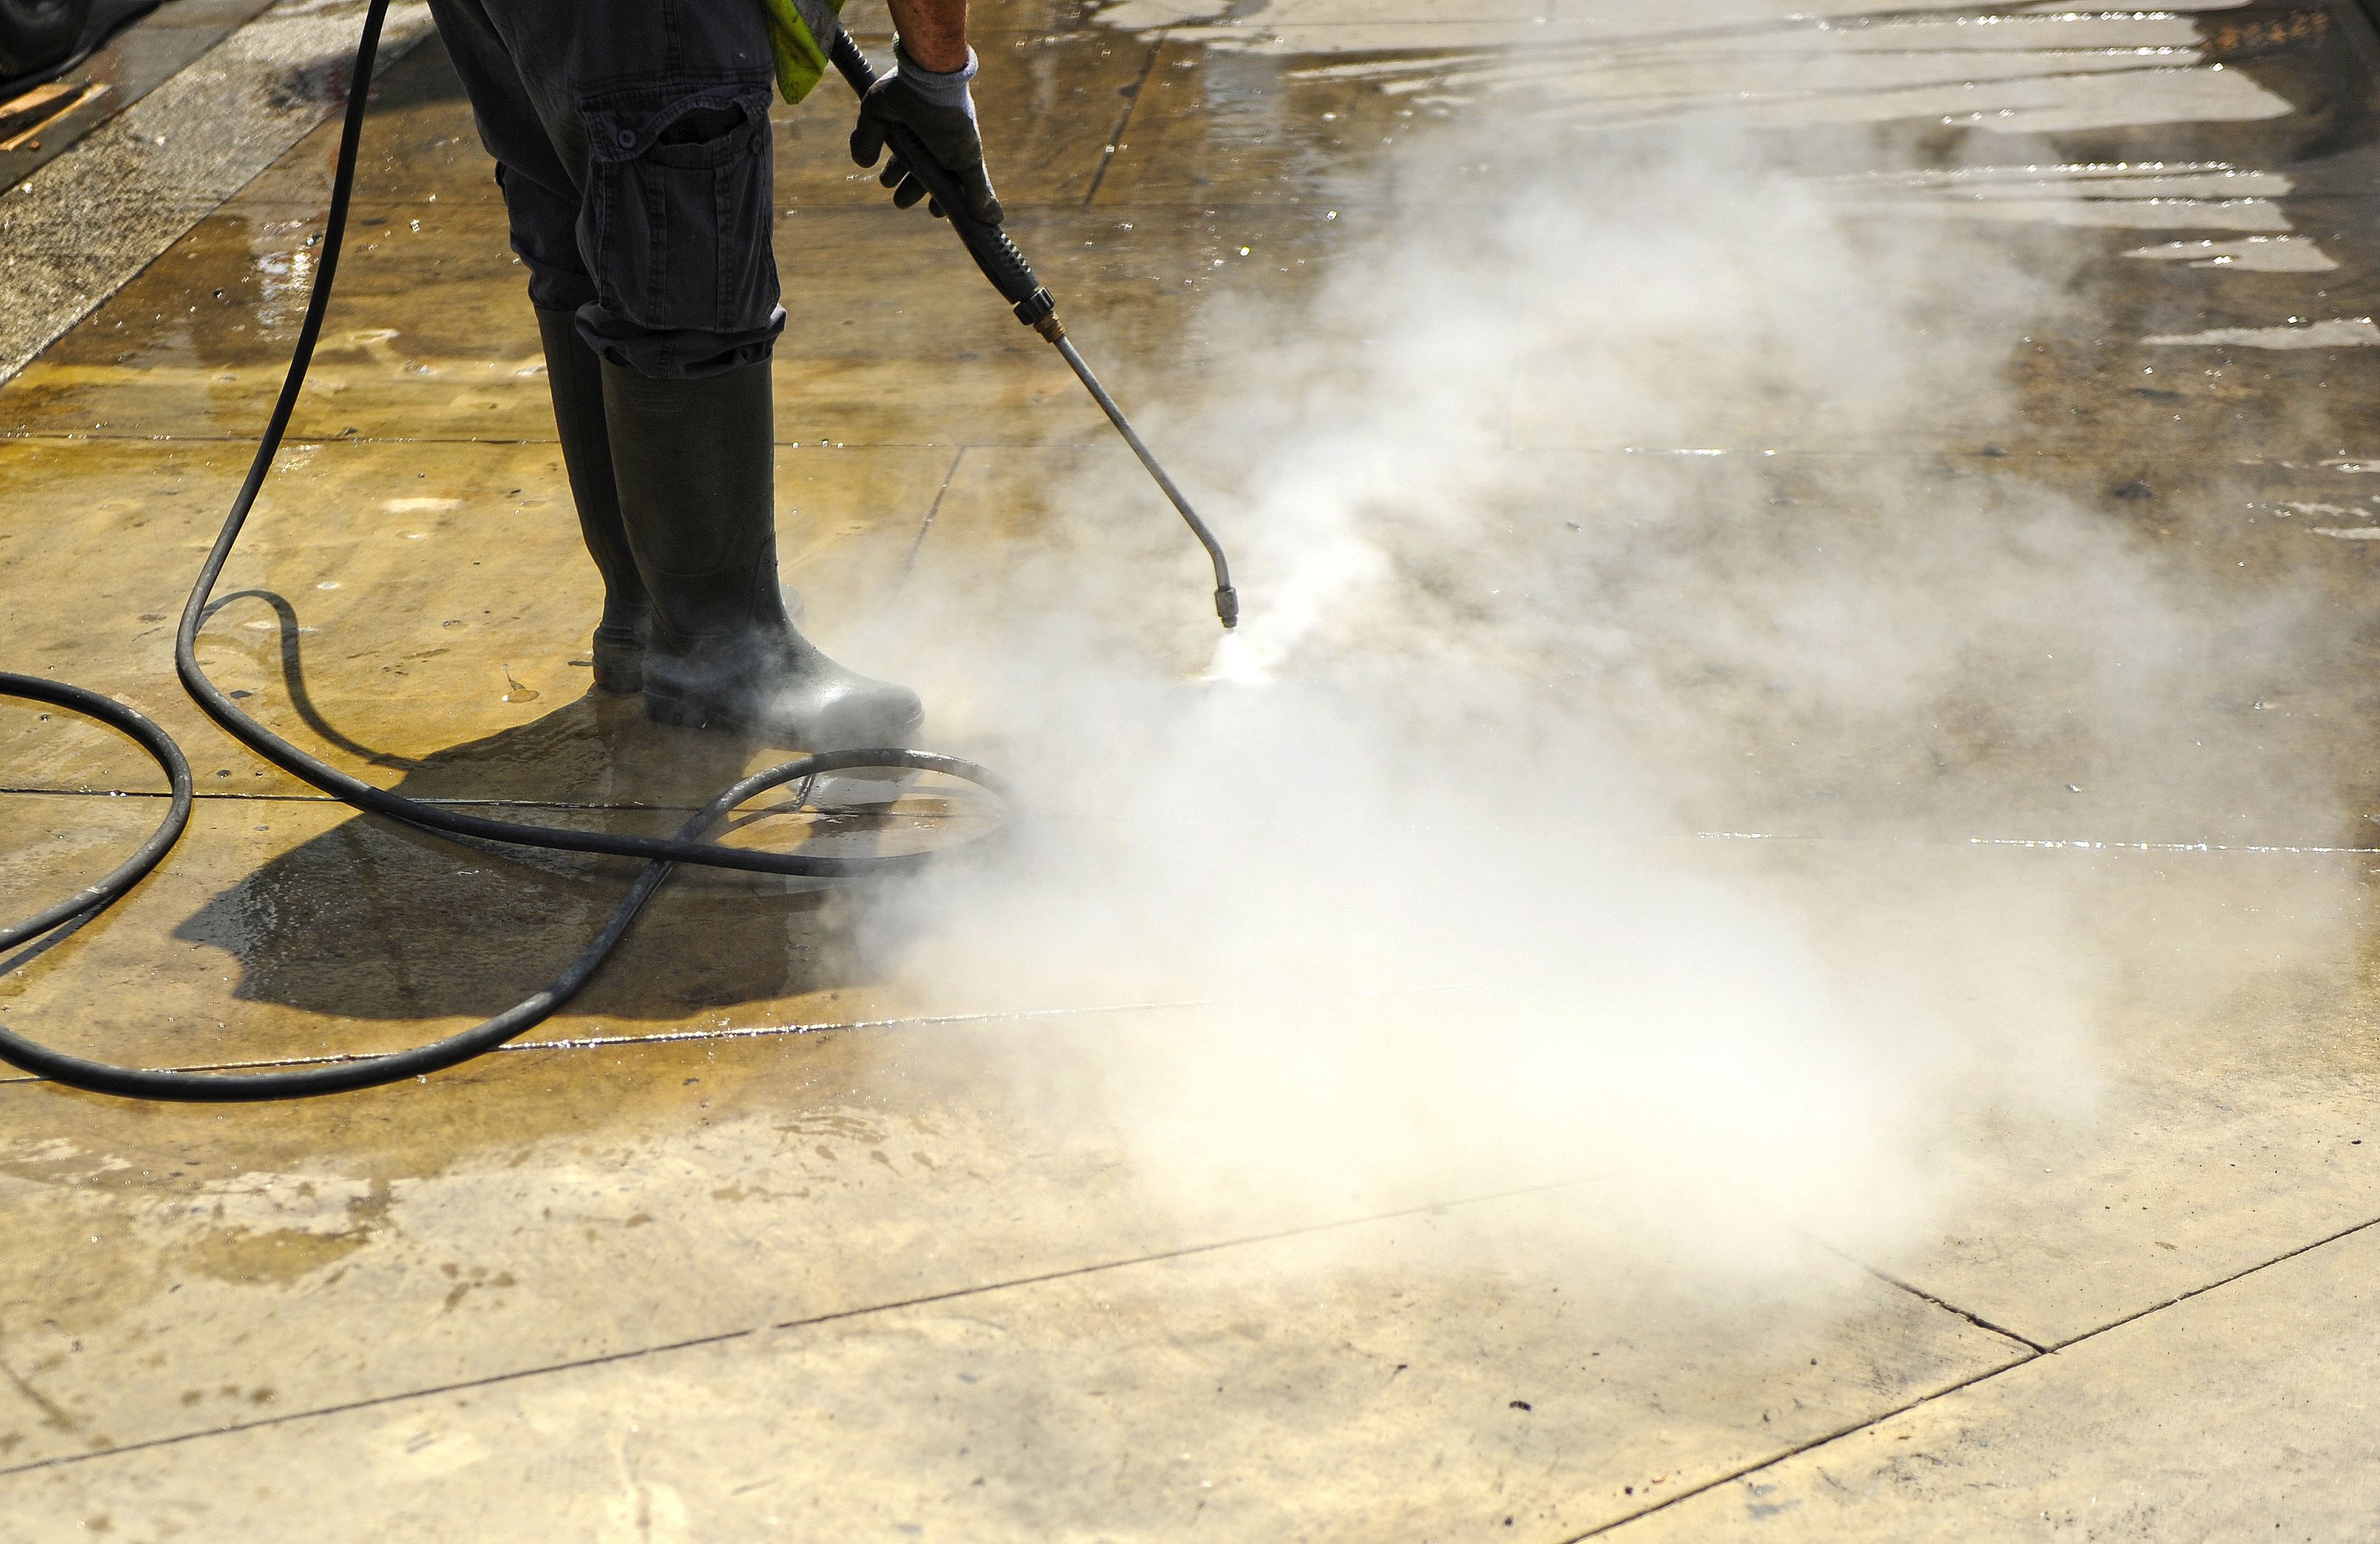 PRESSURE WASHER, BETTER ELECTRIC OR COMBUSTION?